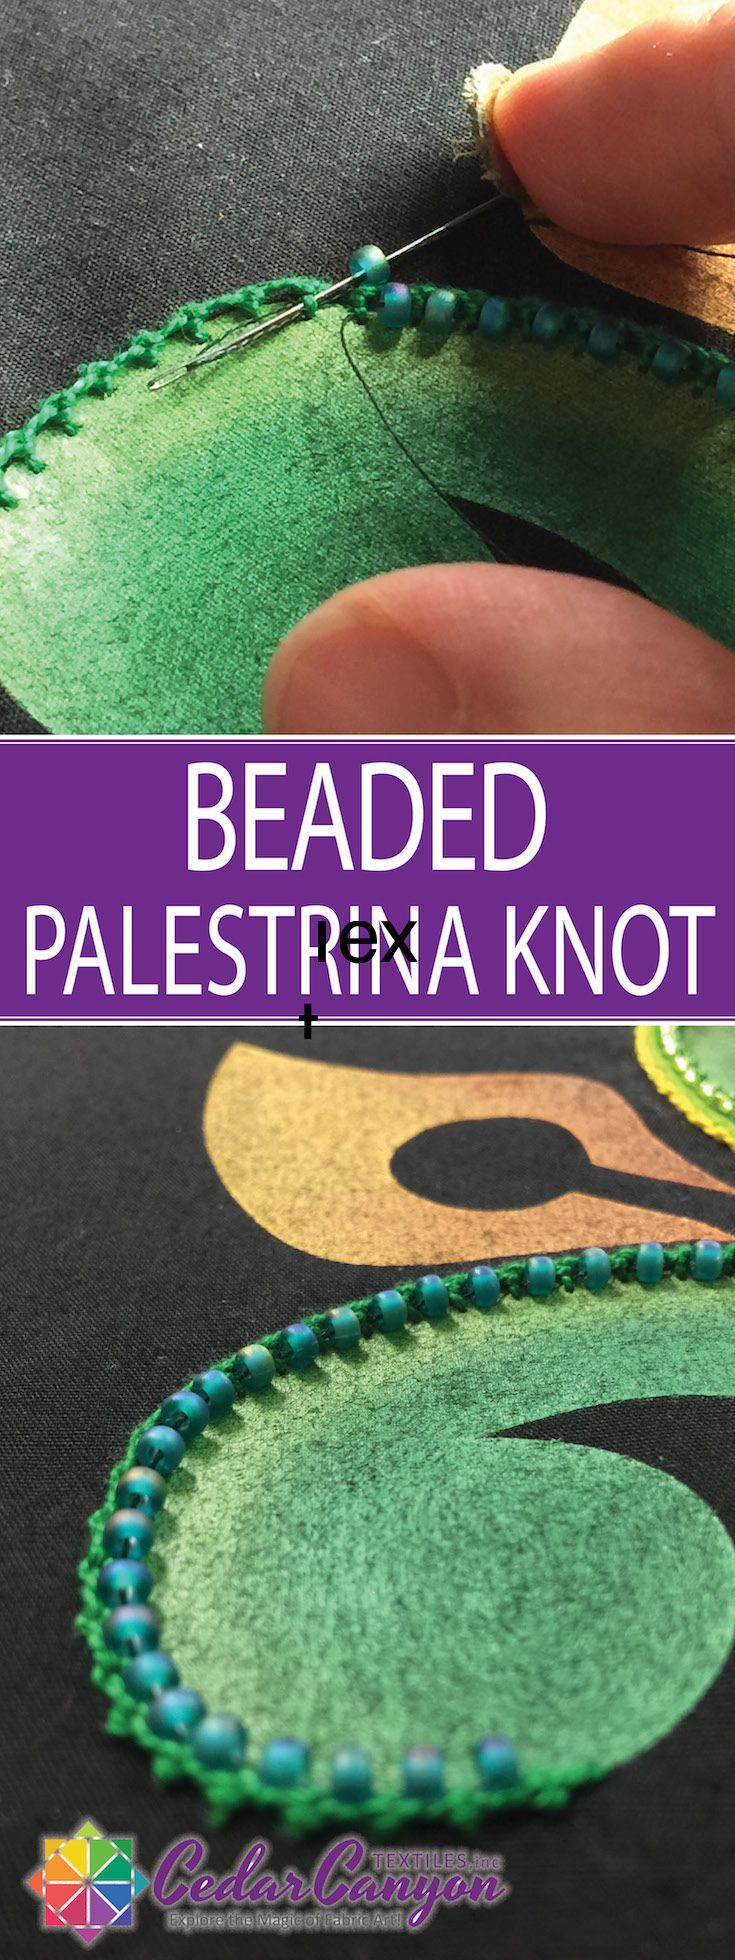 Did you know you can add beads to hand embroidery after the stitching is done? See how fabric artist Shelly Stokes creates Beaded Palestrina Knots.